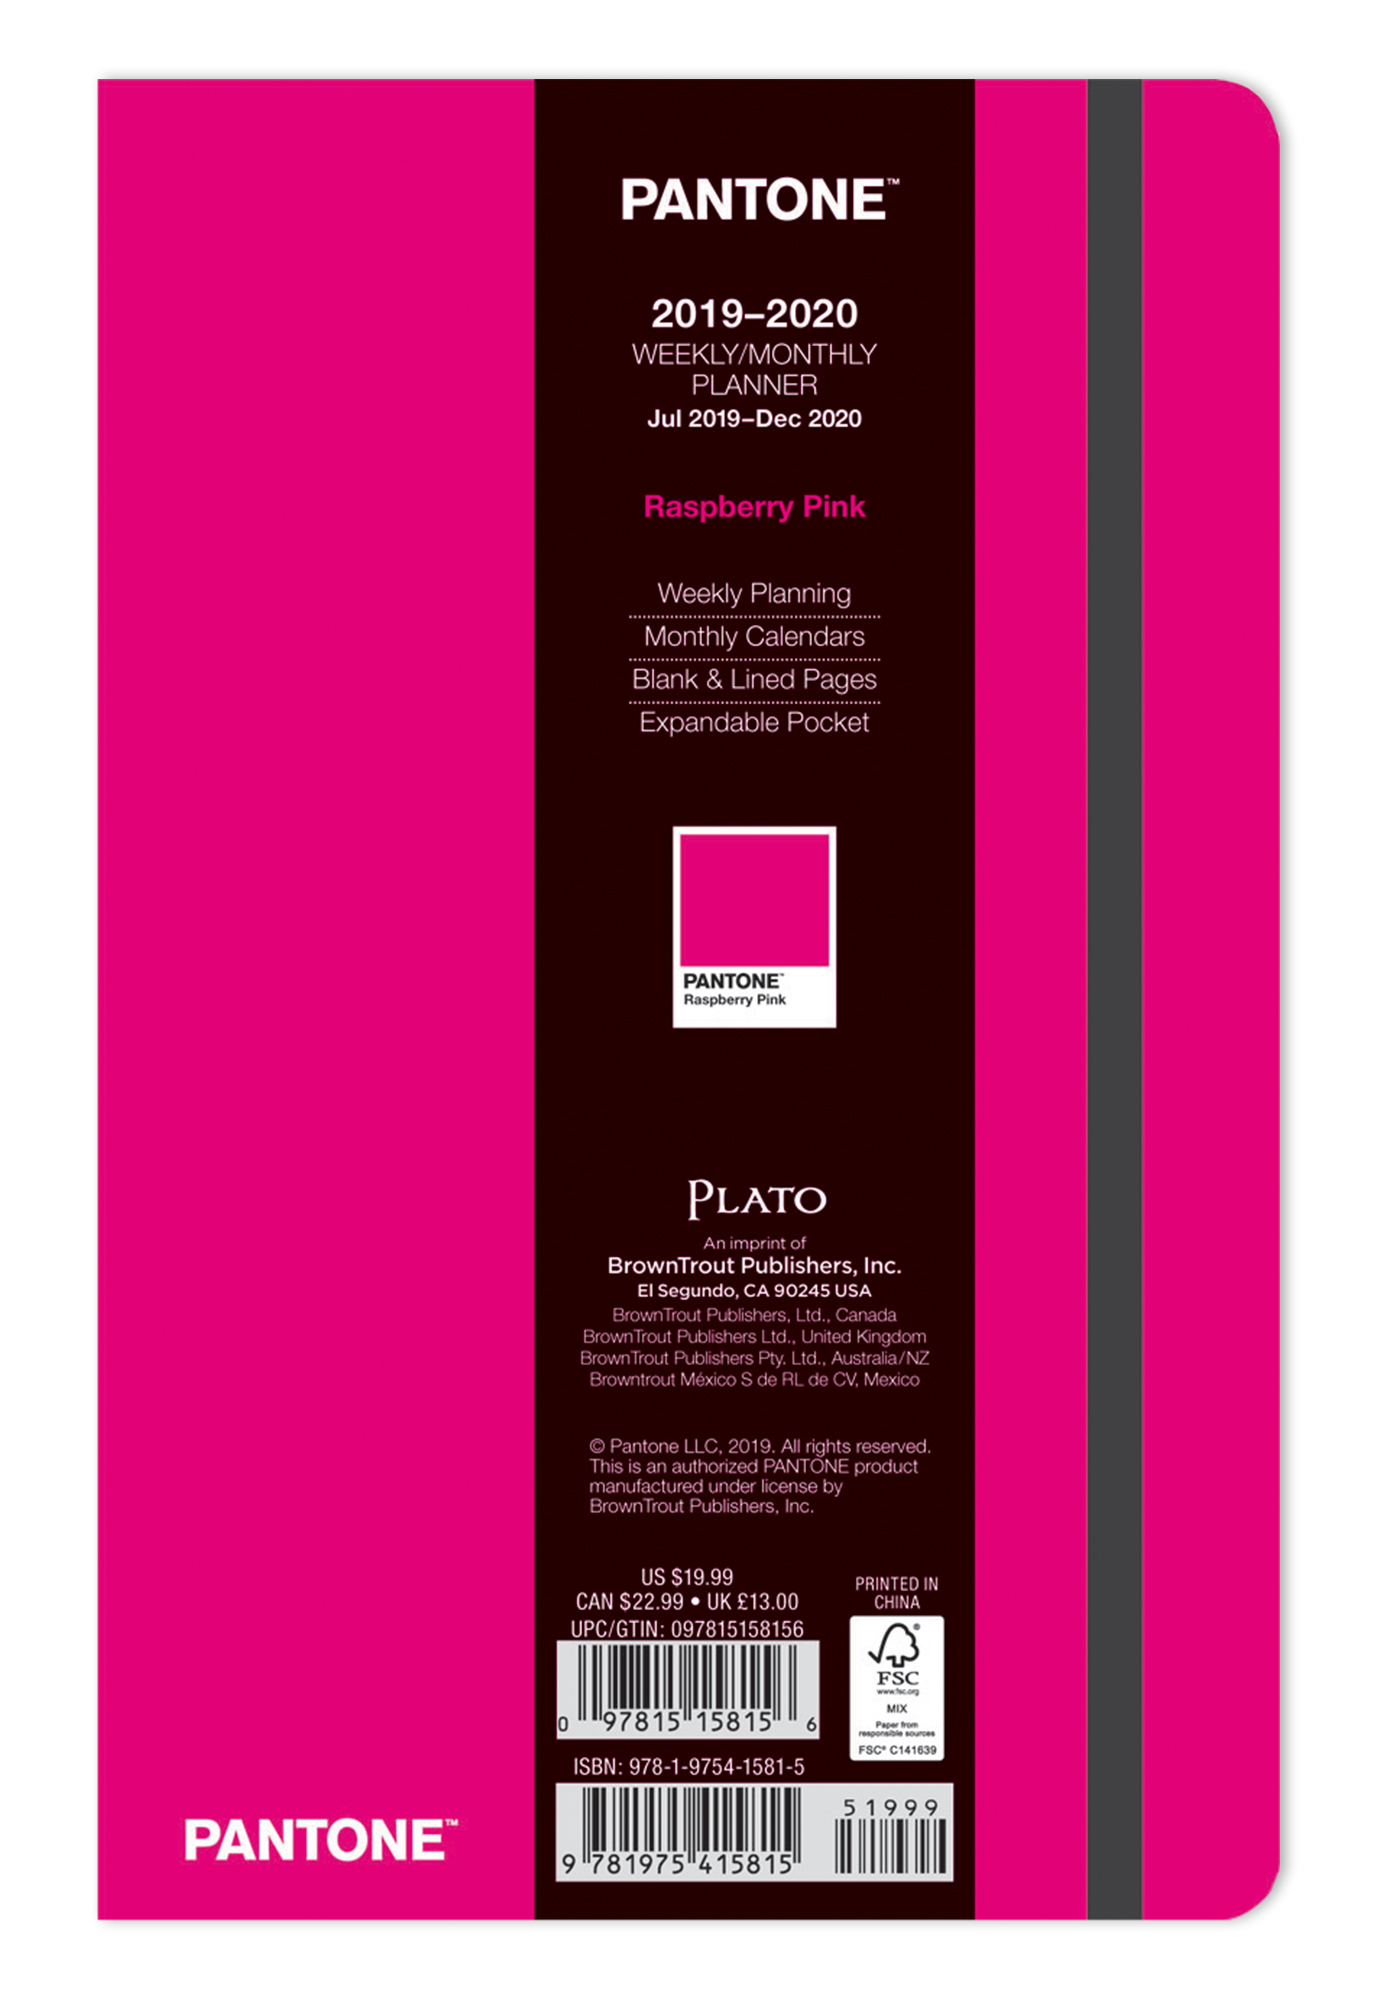 Pantone™ 2020 5.25 x 8.25 Inch Fashion Planner 18 Months Compact Weekly from Plato™ Raspberry Pink